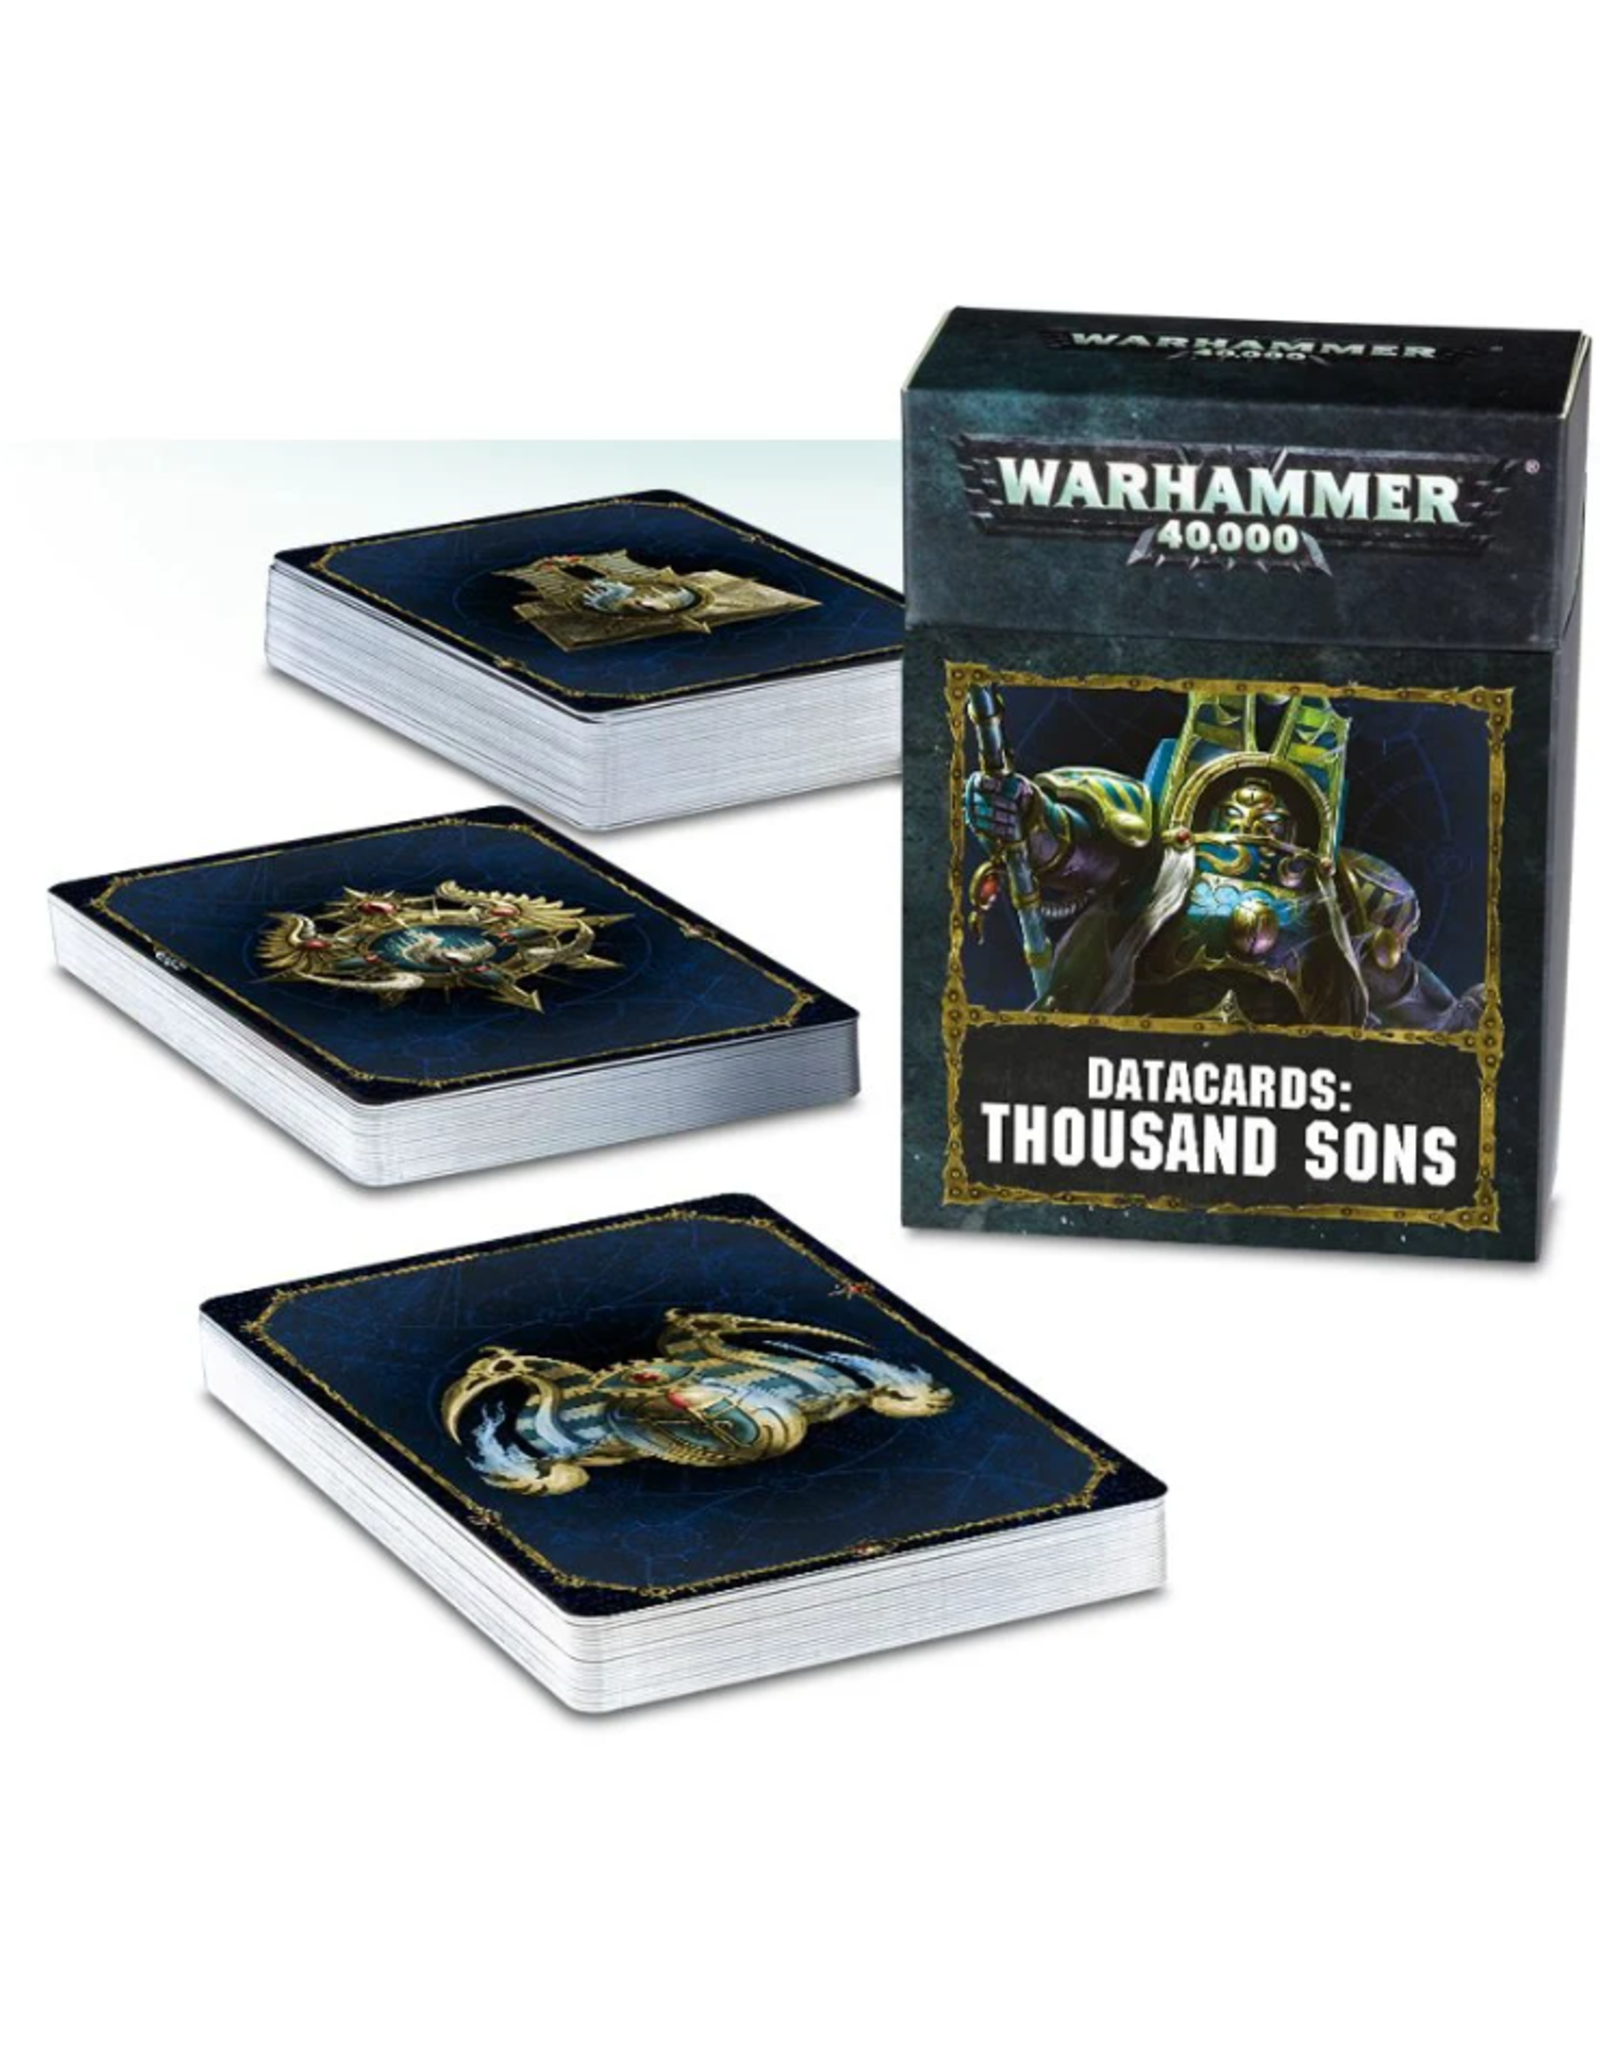 Warhammer 40K Datacards Thousand Sons